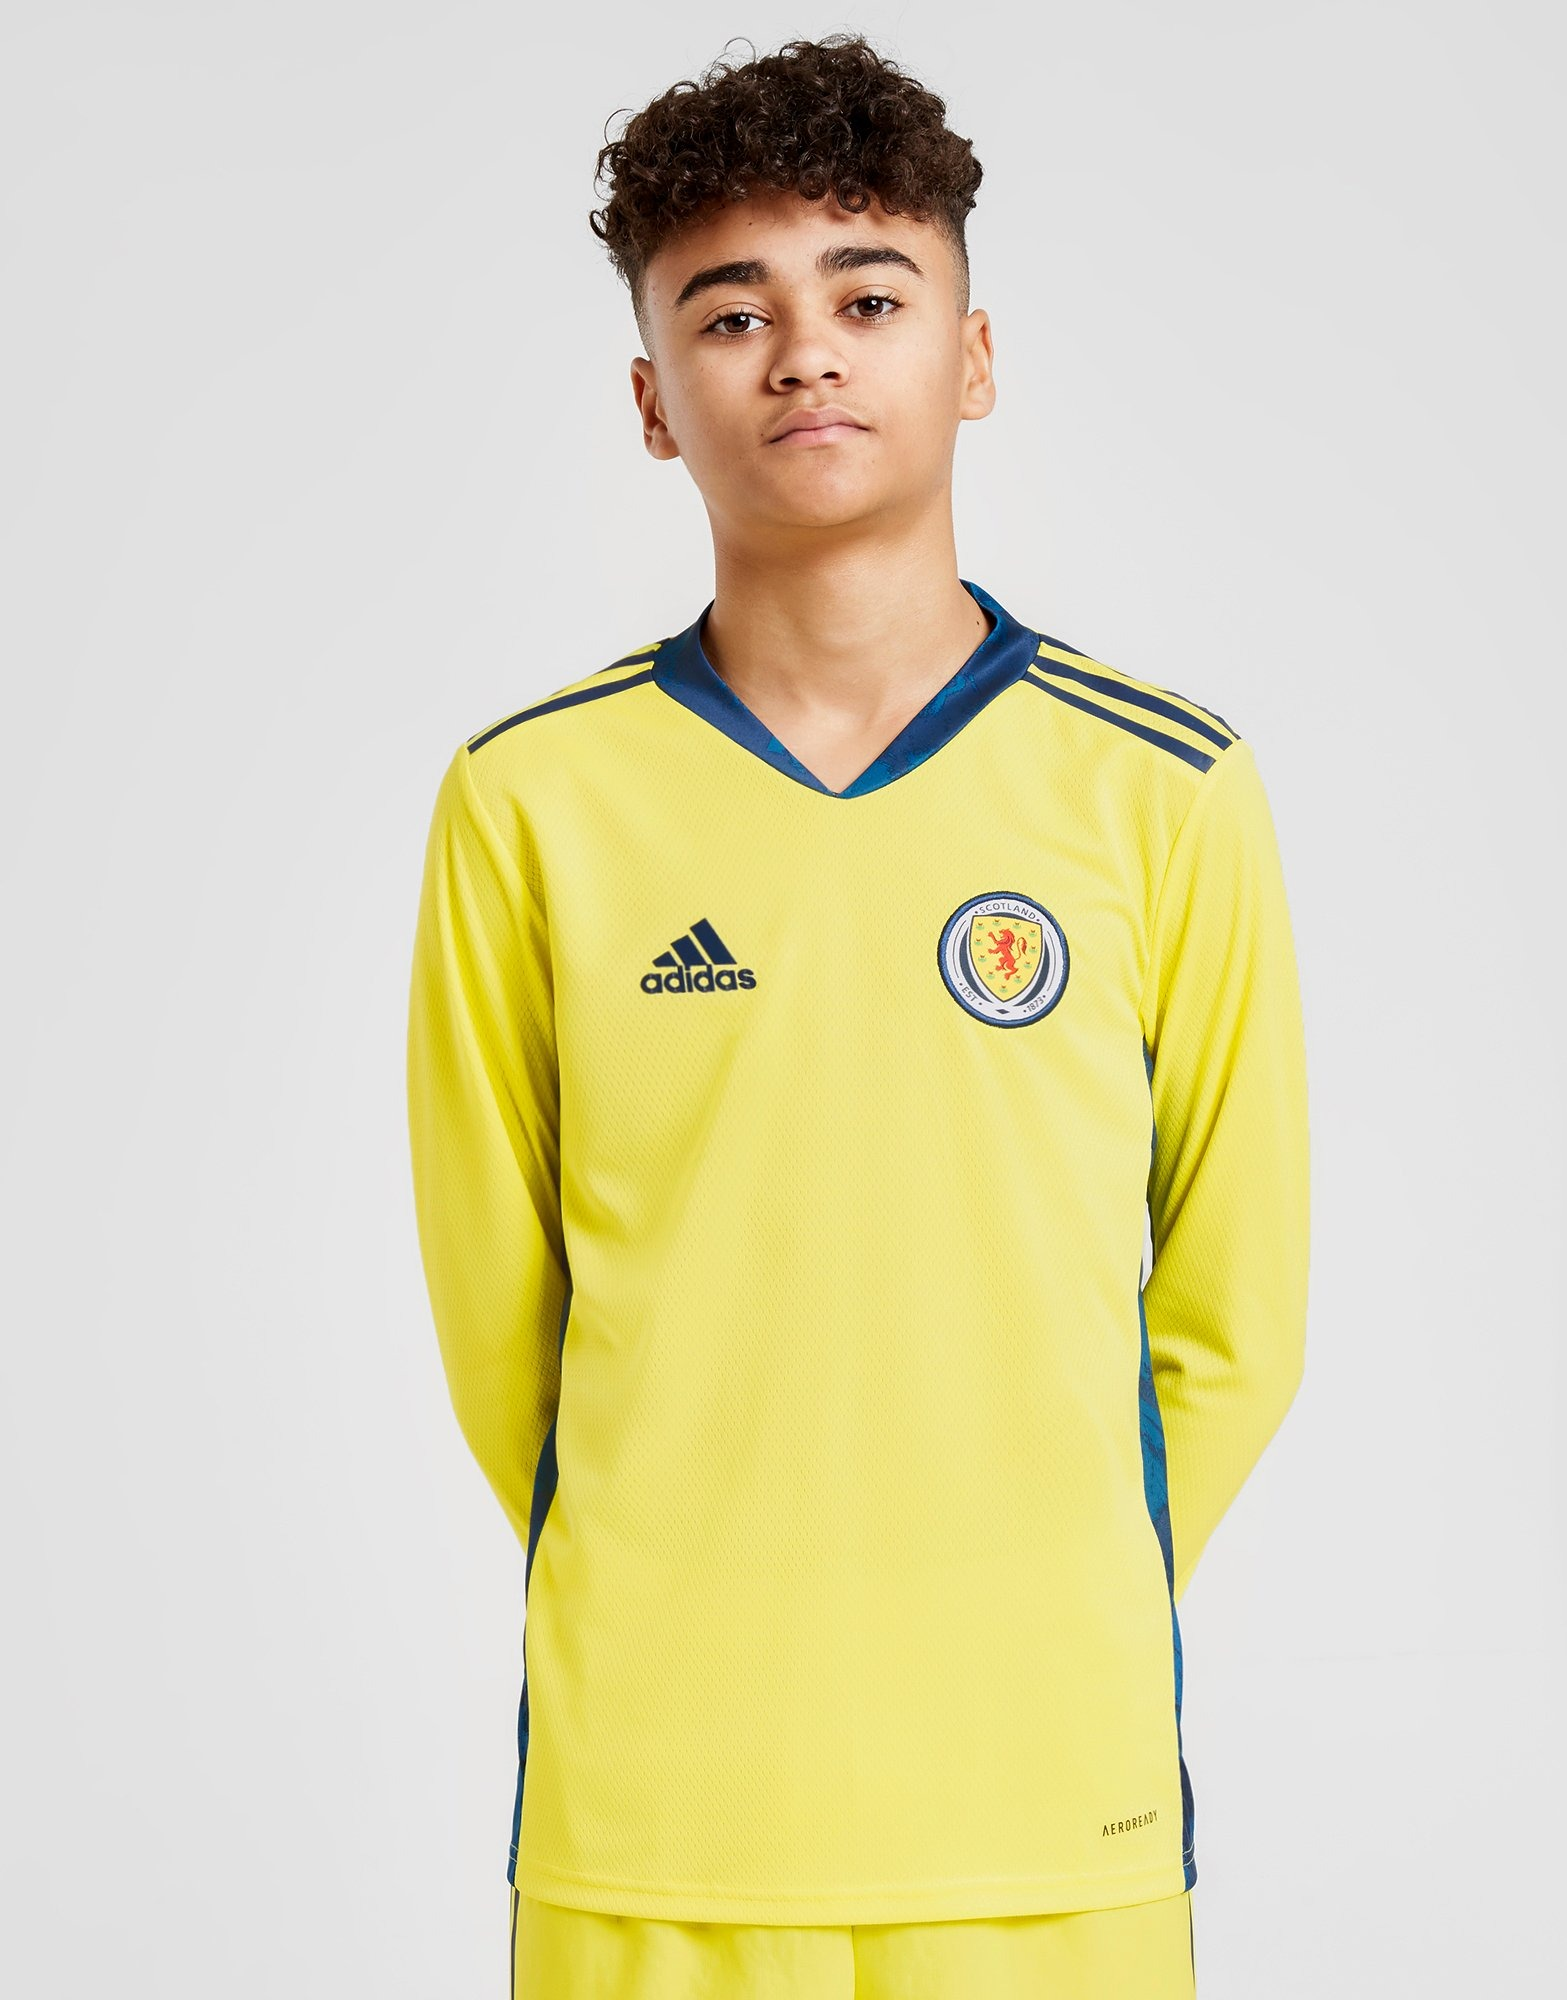 adidas Camisola de Guarda Redes do Equipamento Principal Scotland 2020 para Júnior | JD Sports